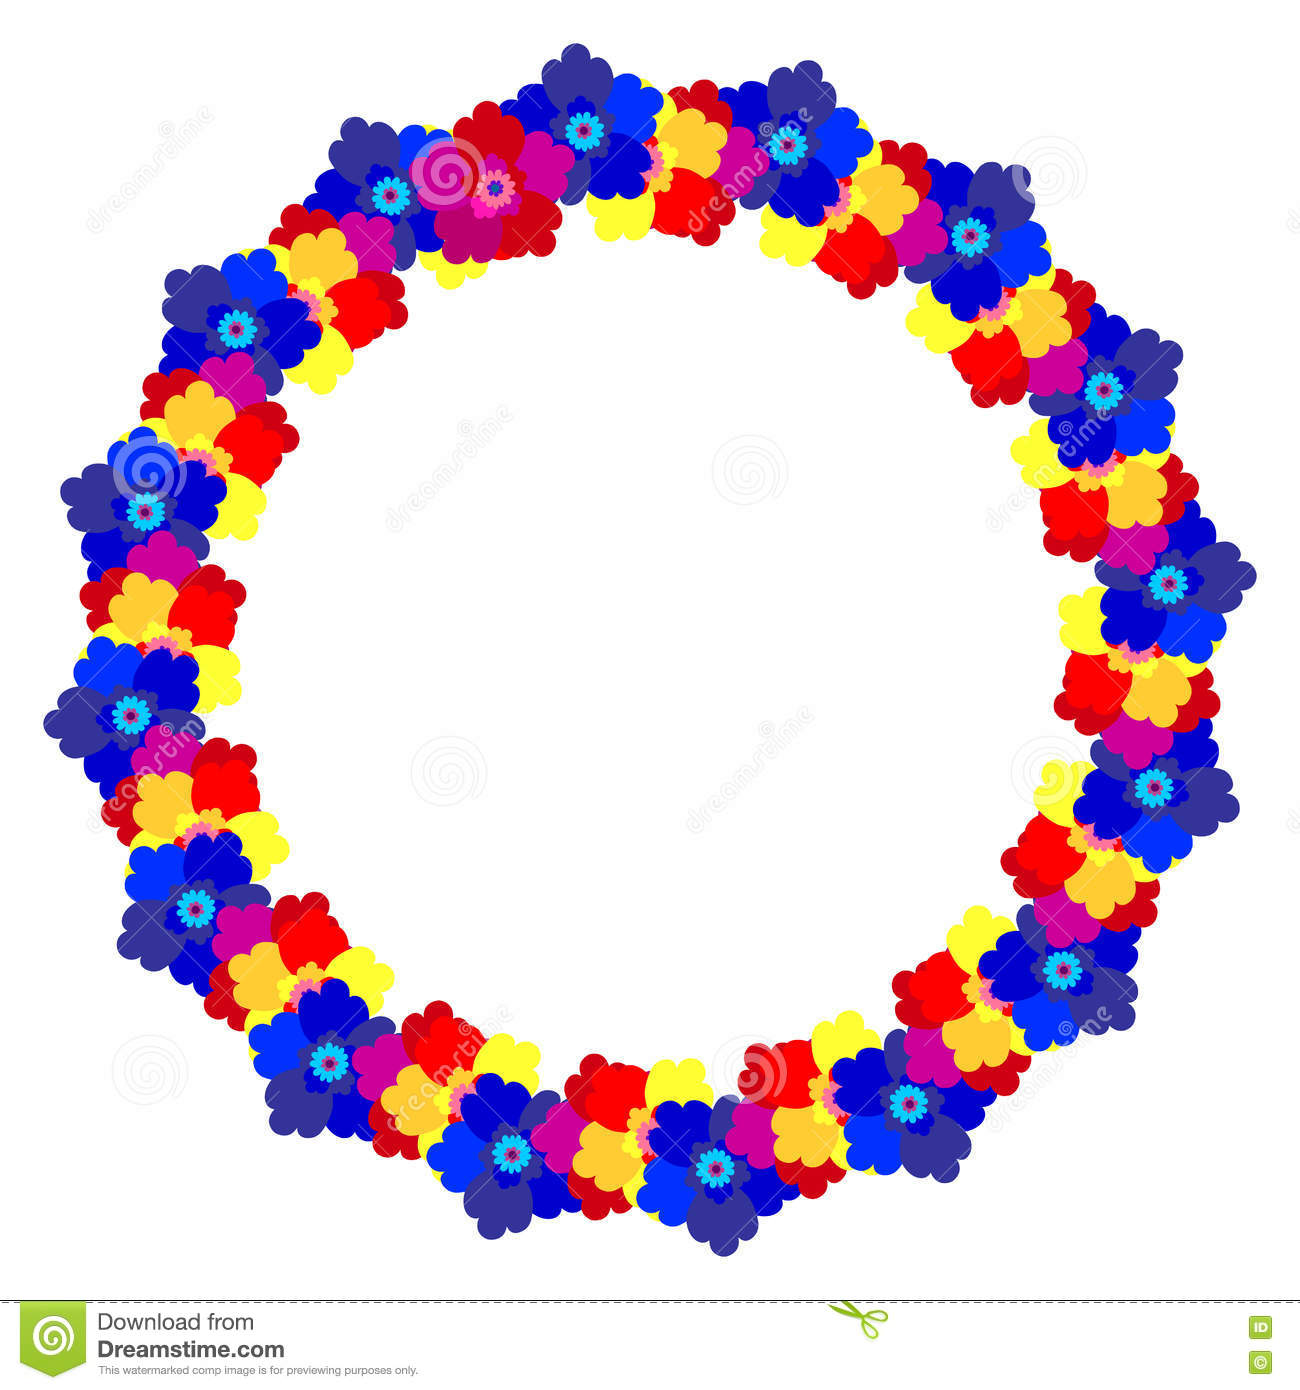 b05e04d091 Flower frame. Circle wreath of different blossoms. Colourful selection of  flowers on white. Decoration. Cartoon design in flat.